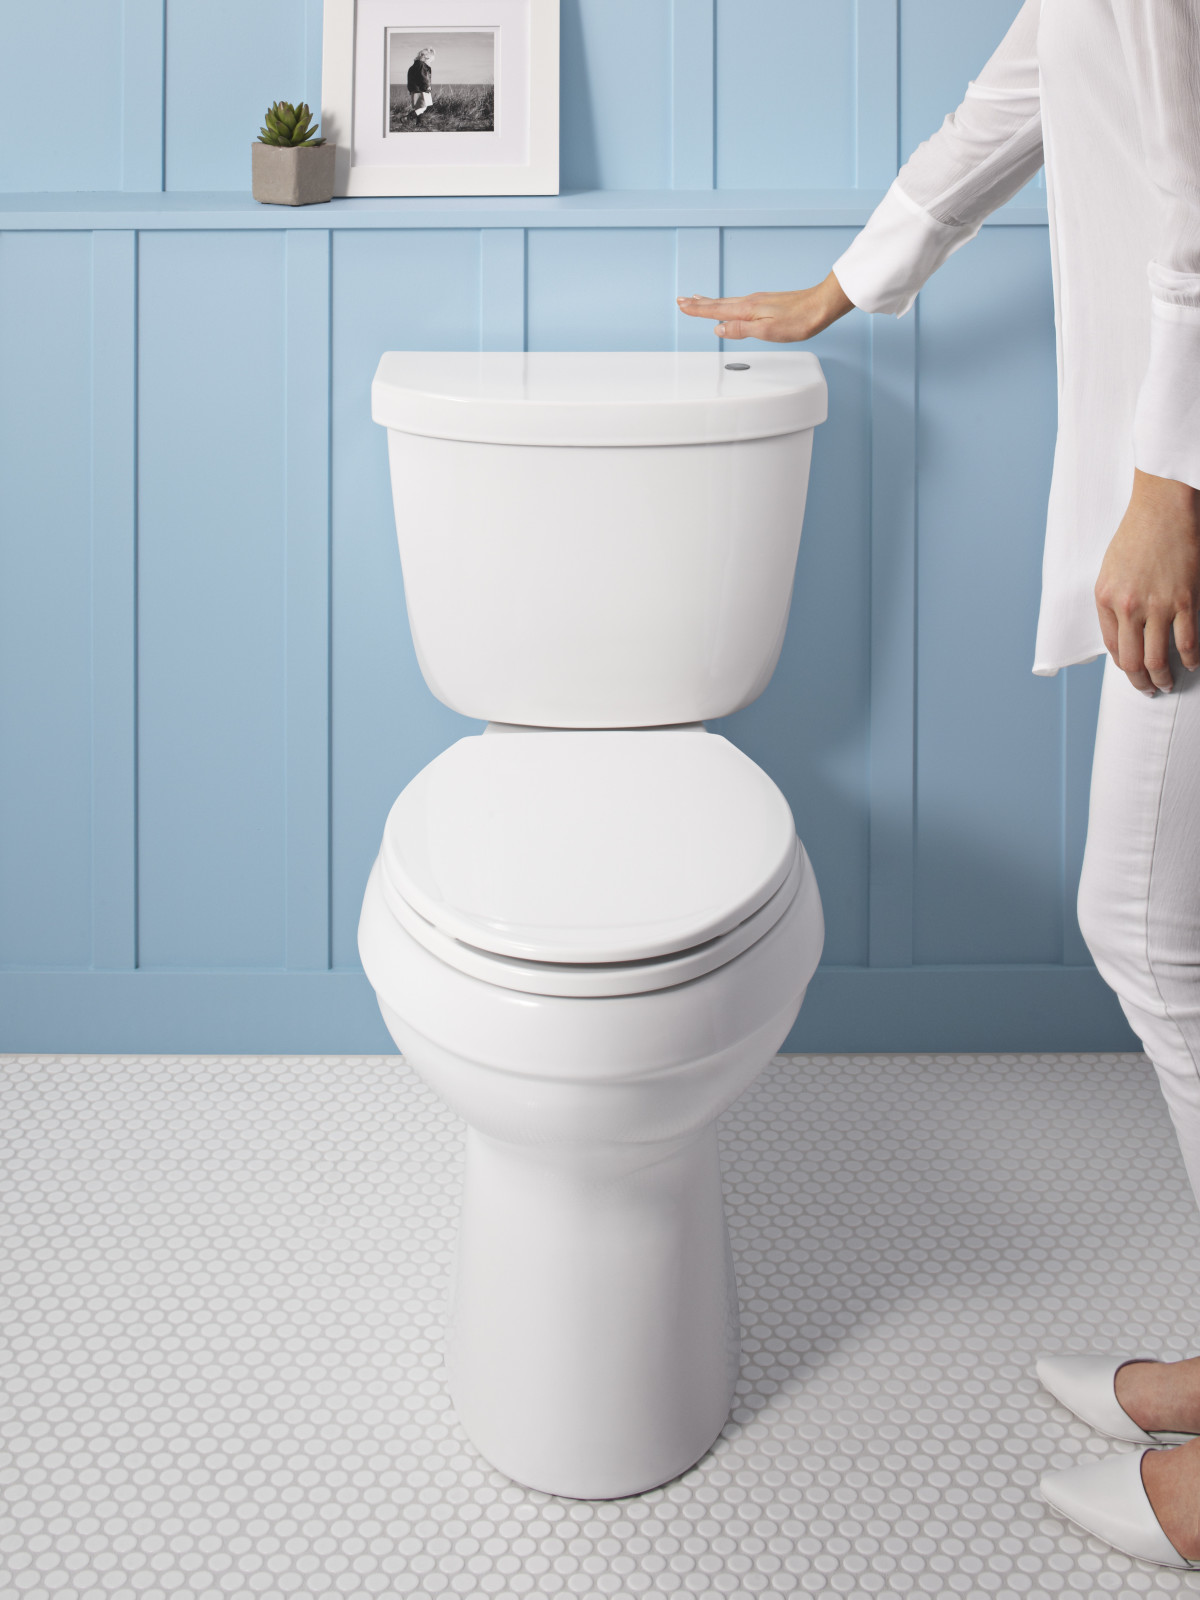 A toilet with a germ-free flush - Fine Homebuilding